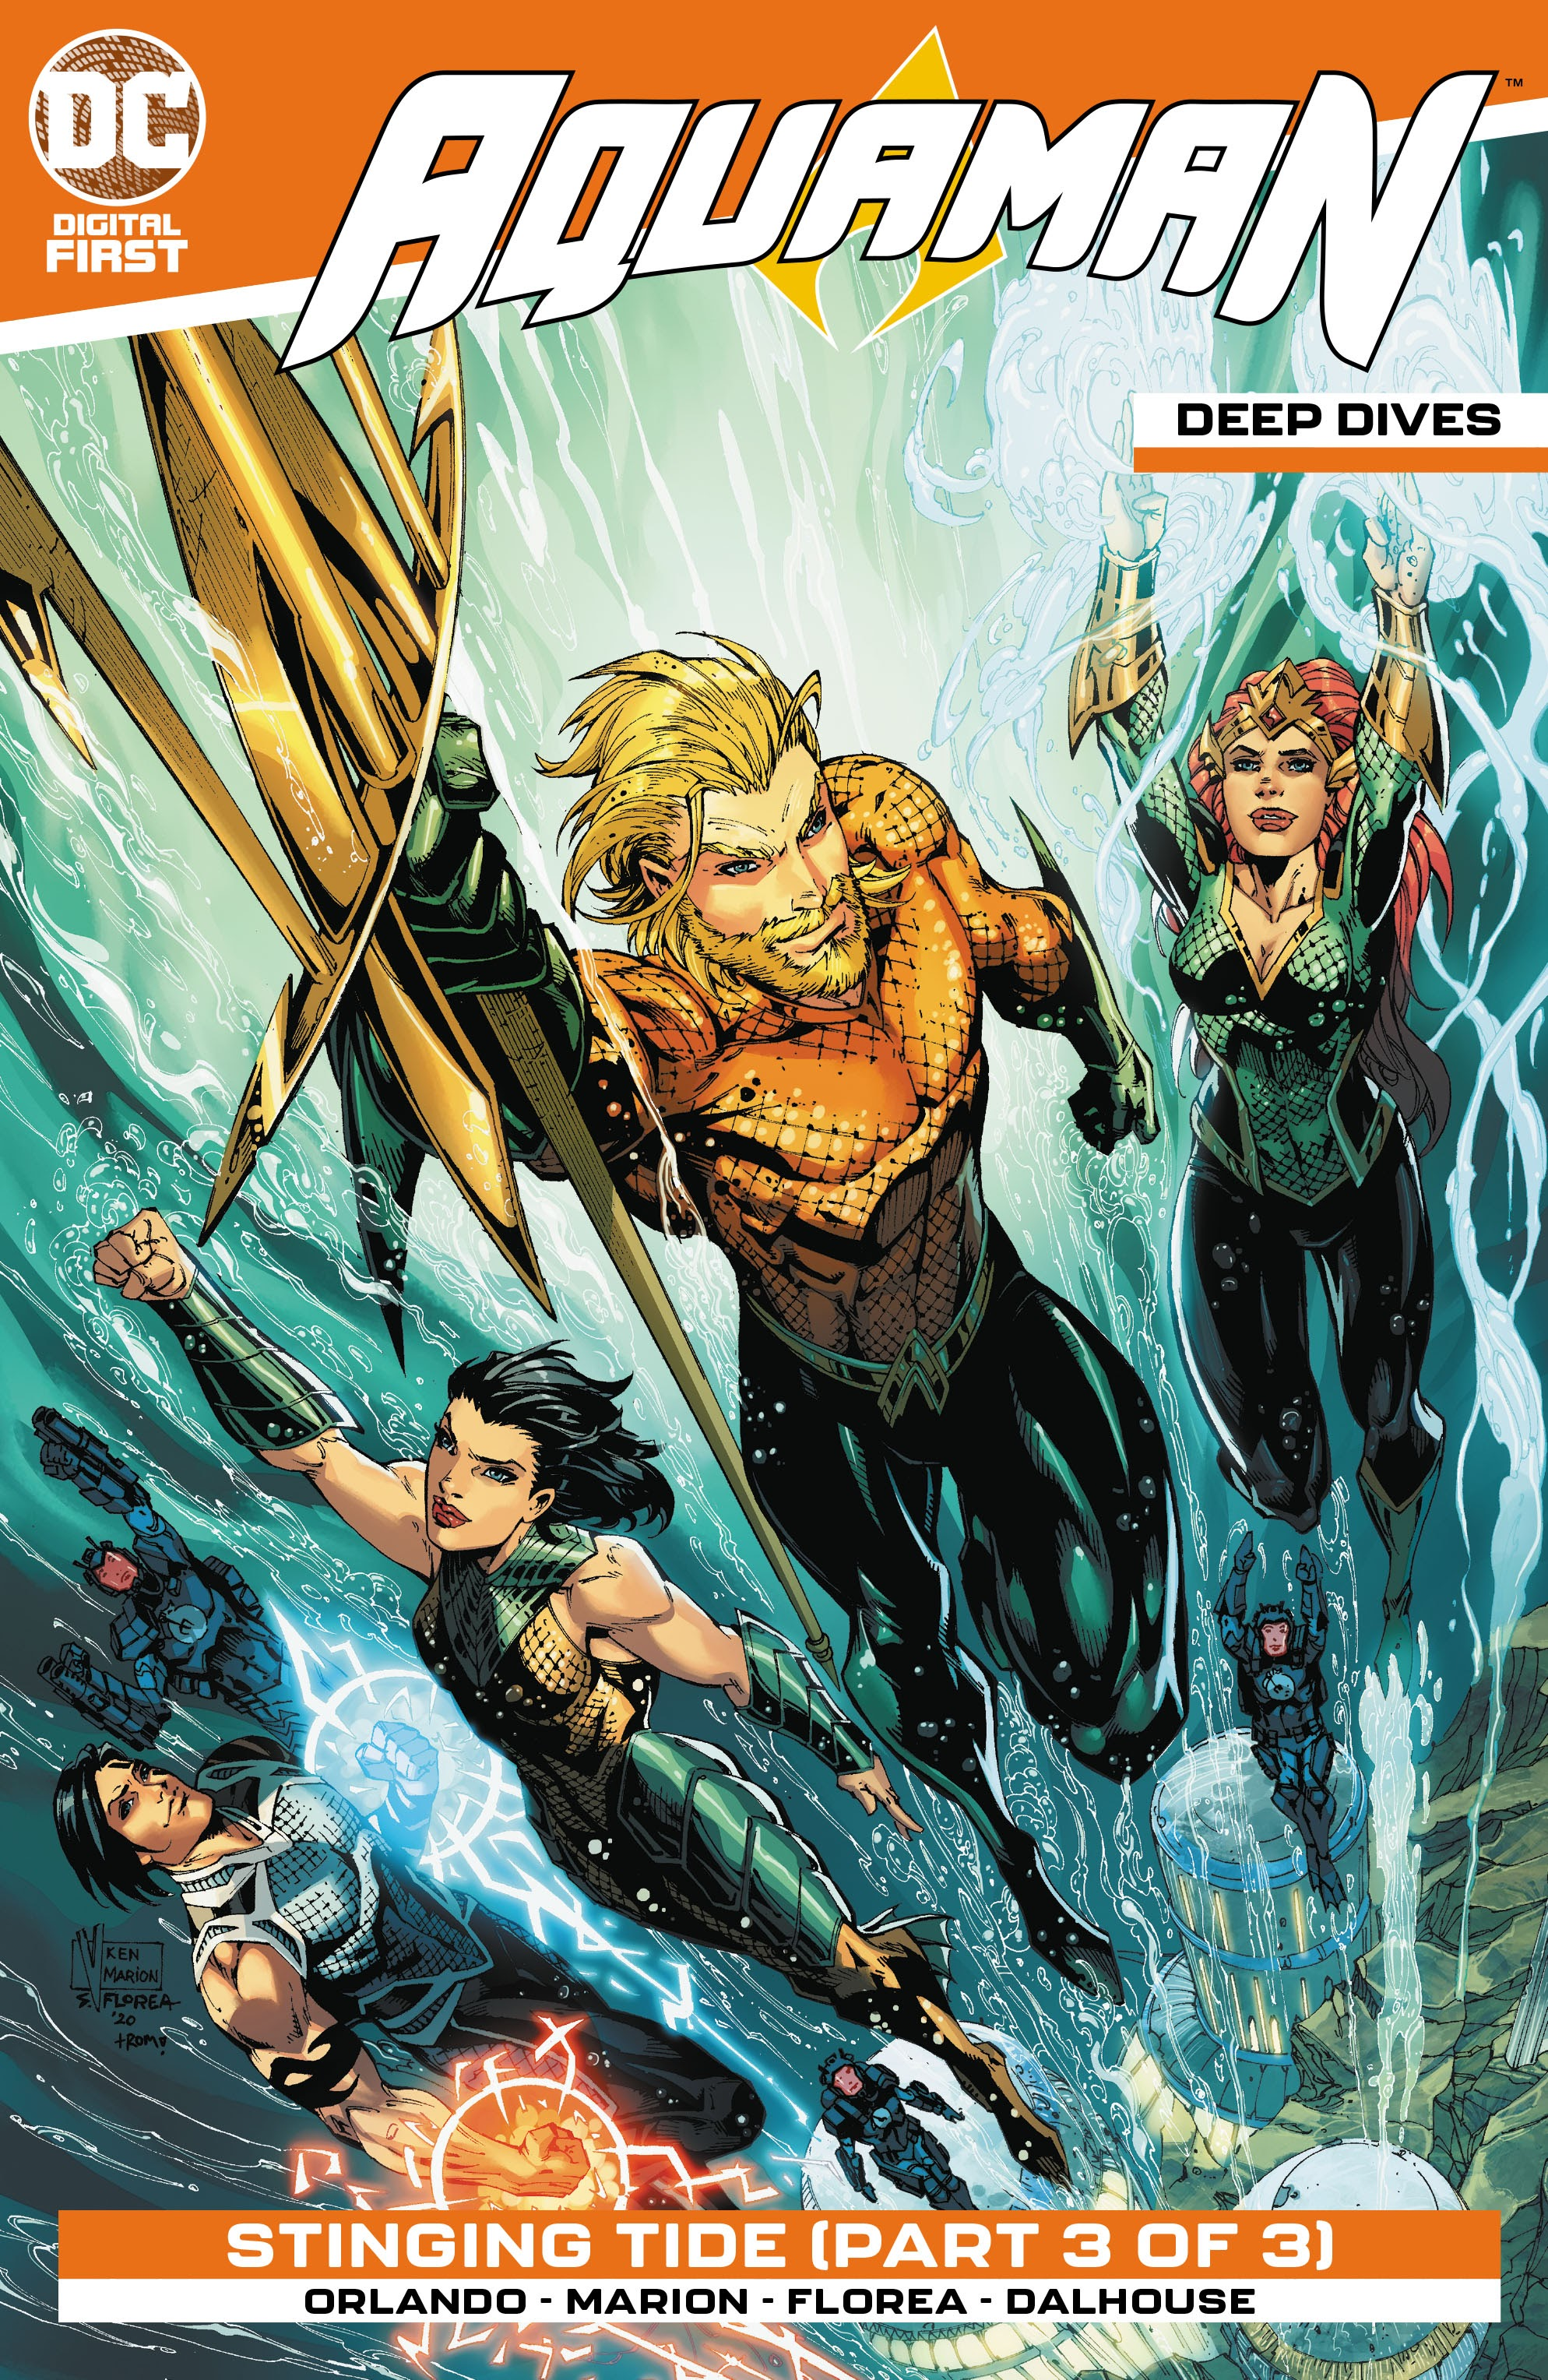 Aquaman: Deep Dives Vol 1 7 (Digital)